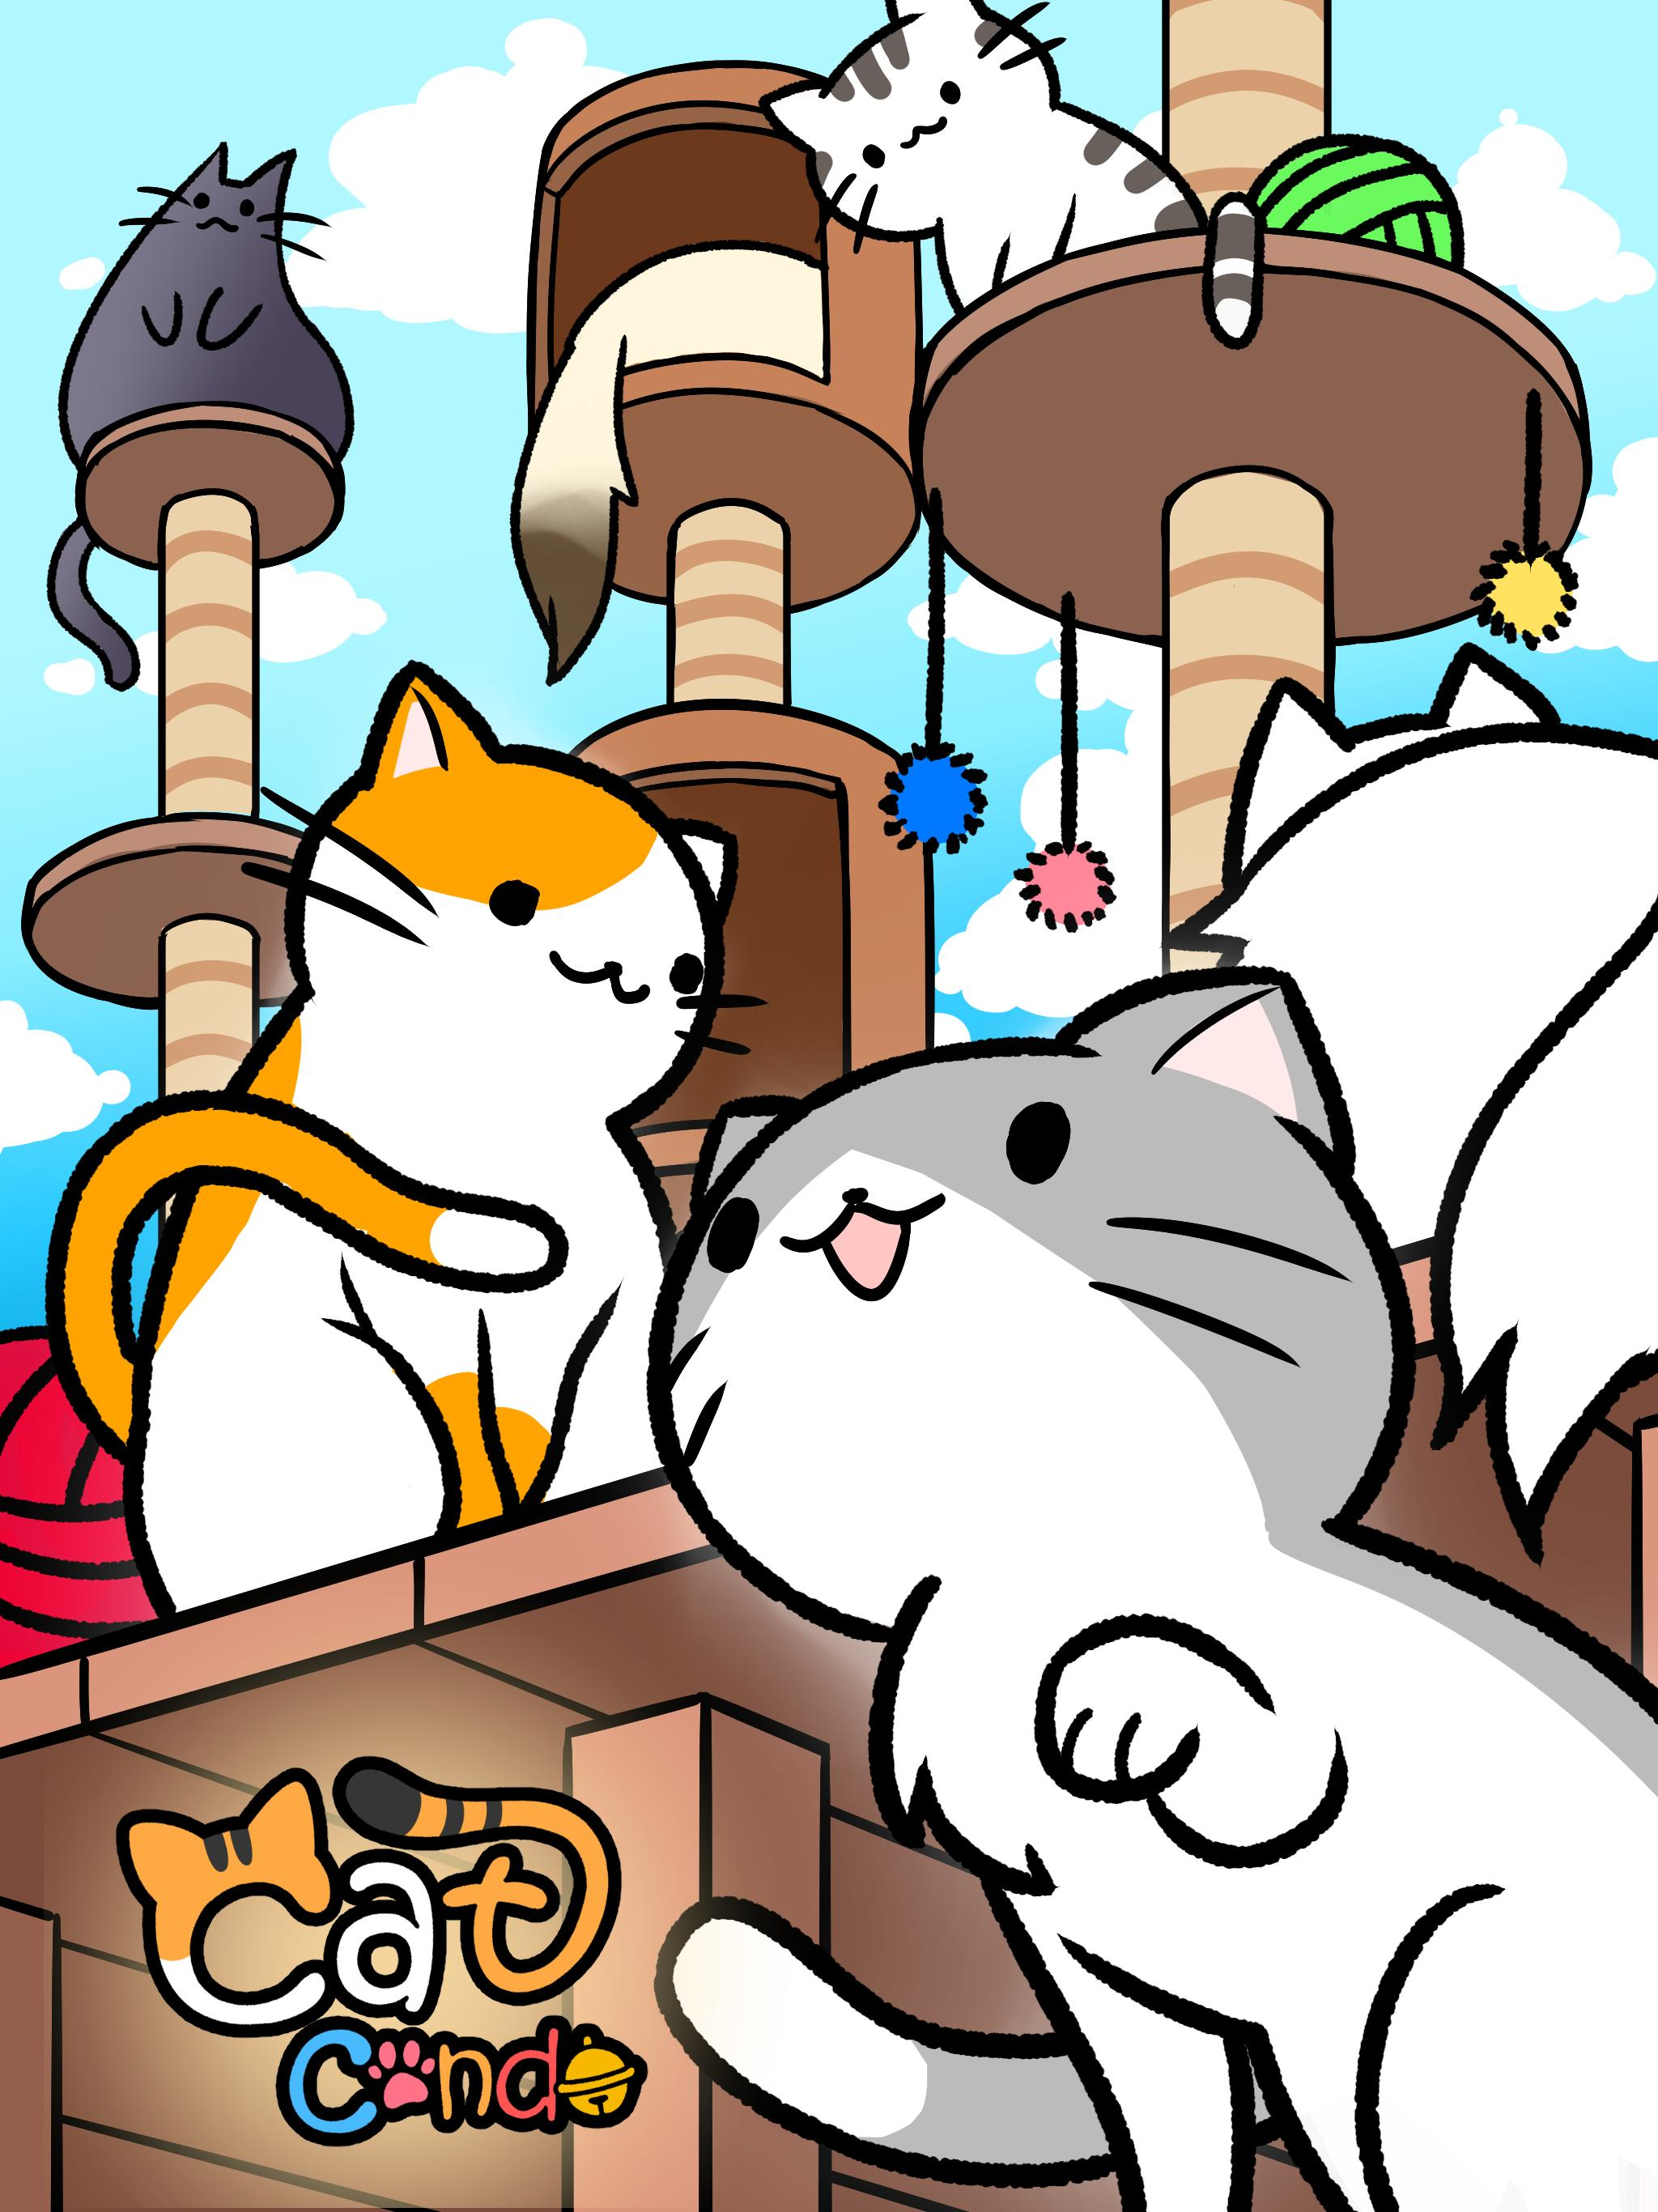 Cat Condo For Android Apk Download